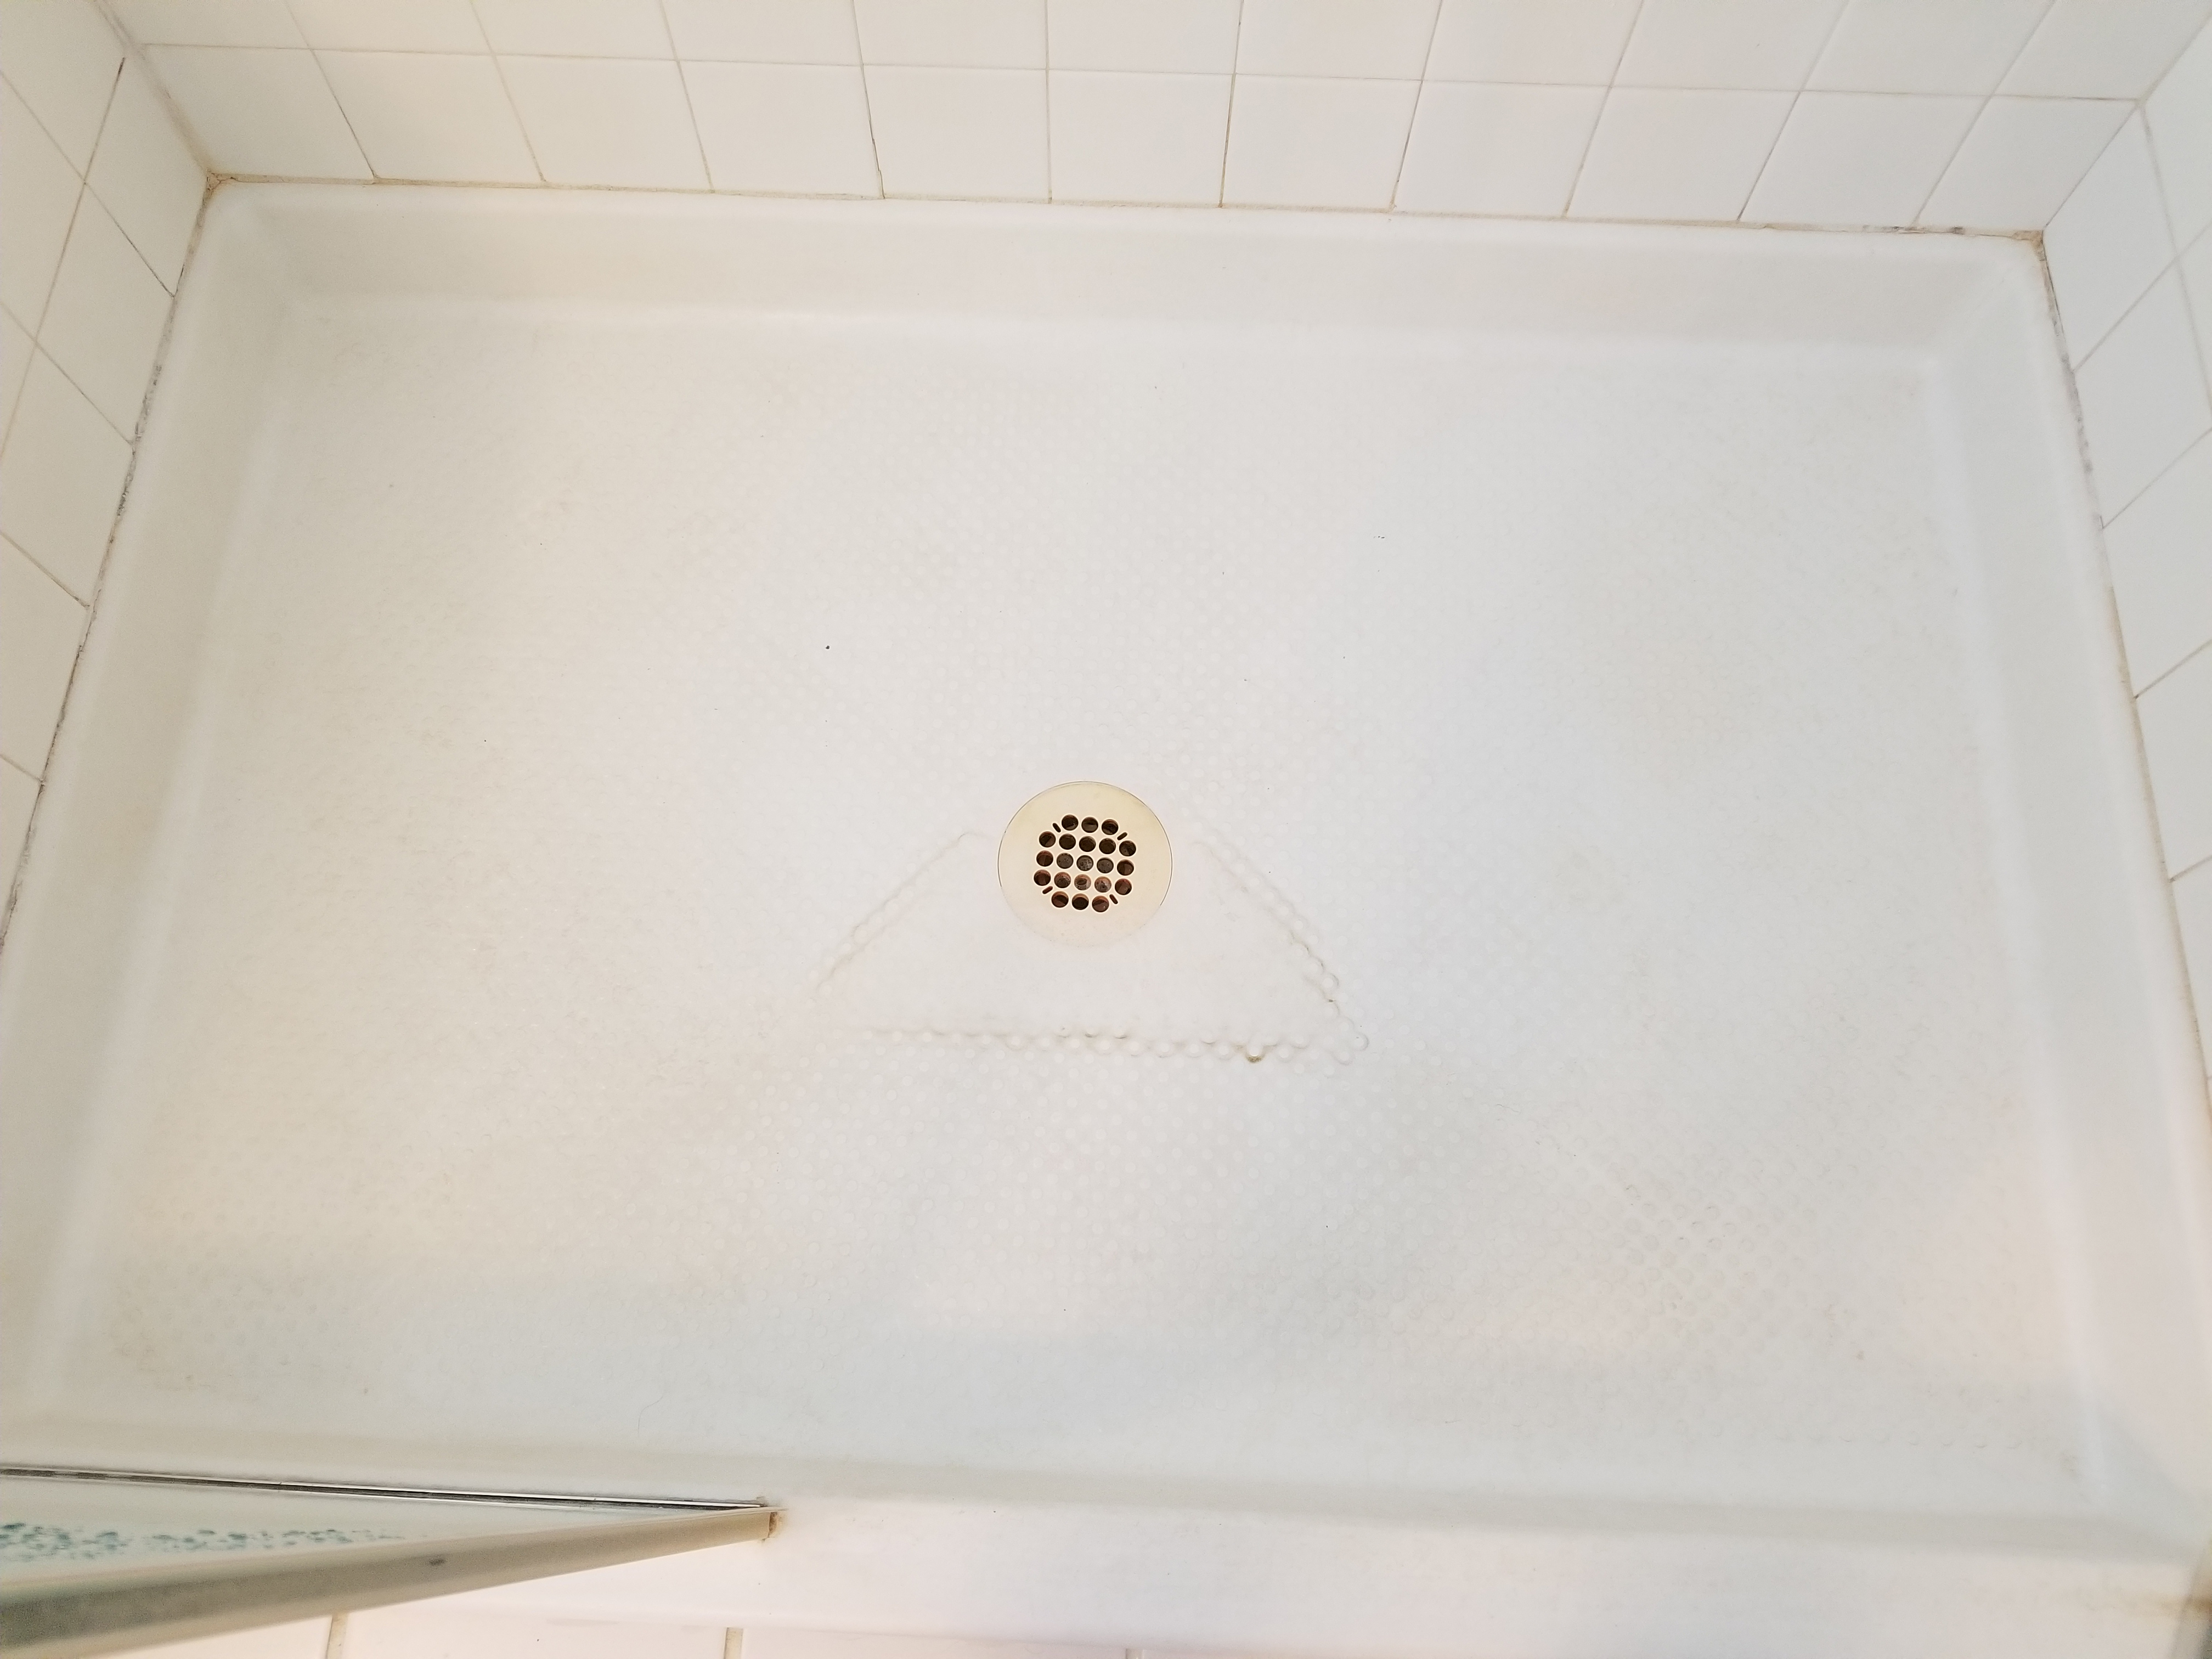 How To Remove A Stain From A Fiberglass Shower Floor The